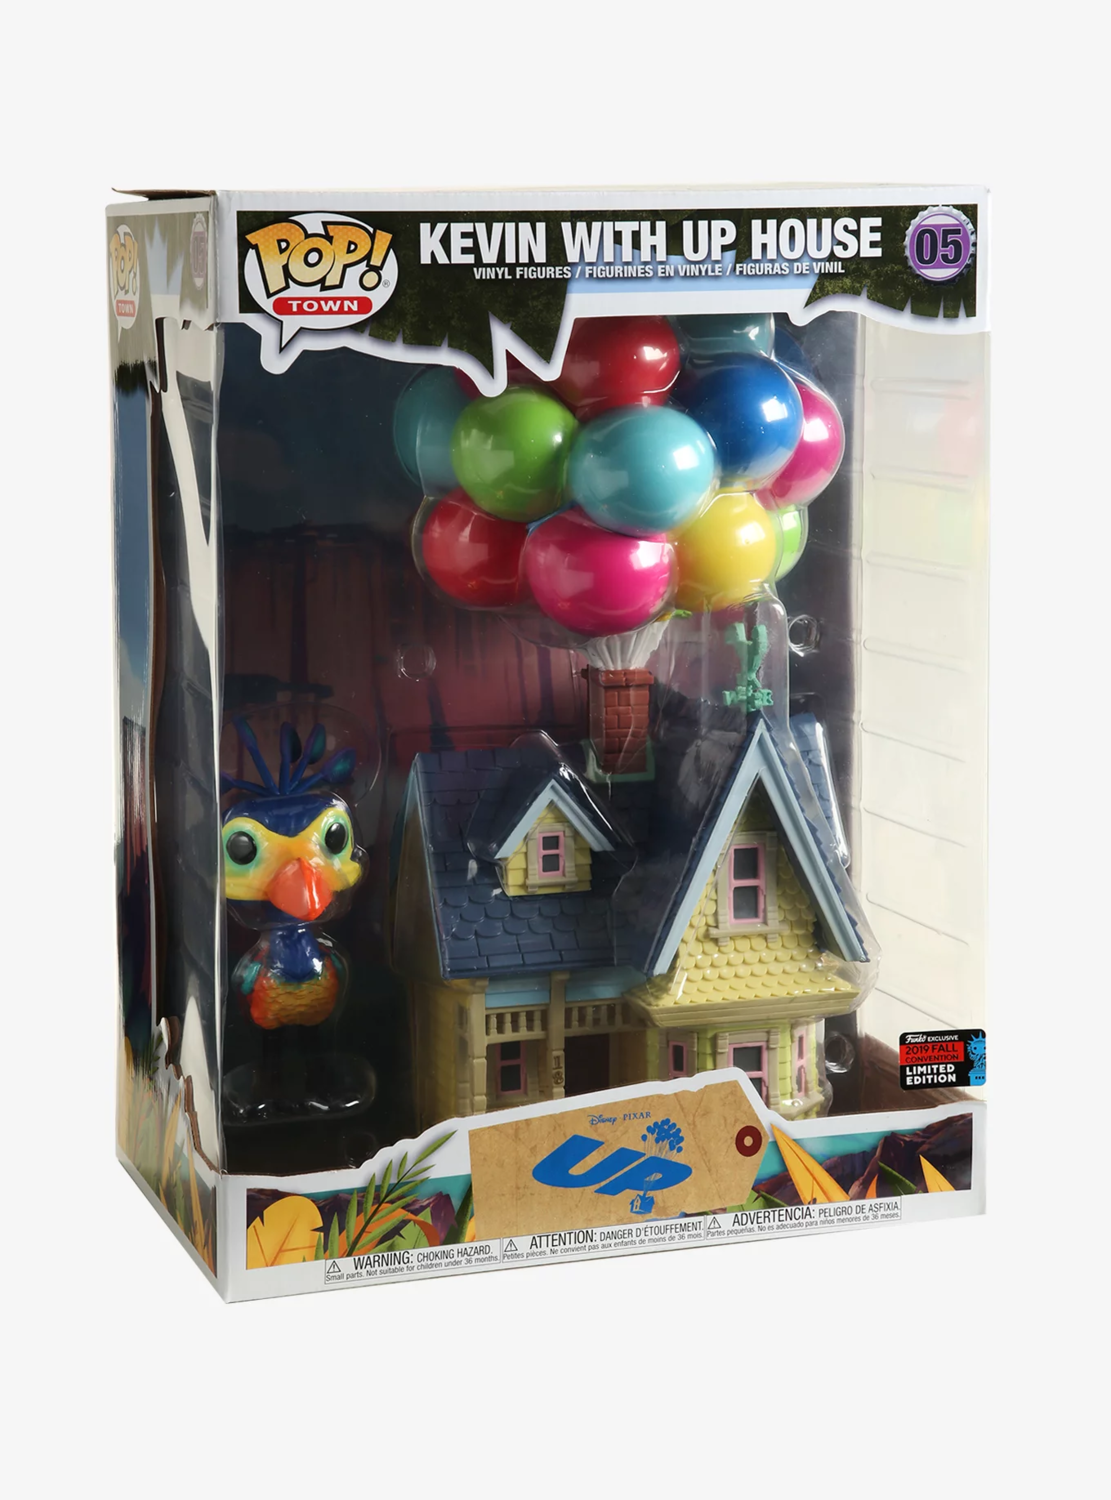 Funko Disney Pixar Up Kevin with Up House Pop! Town Vinyl Figure